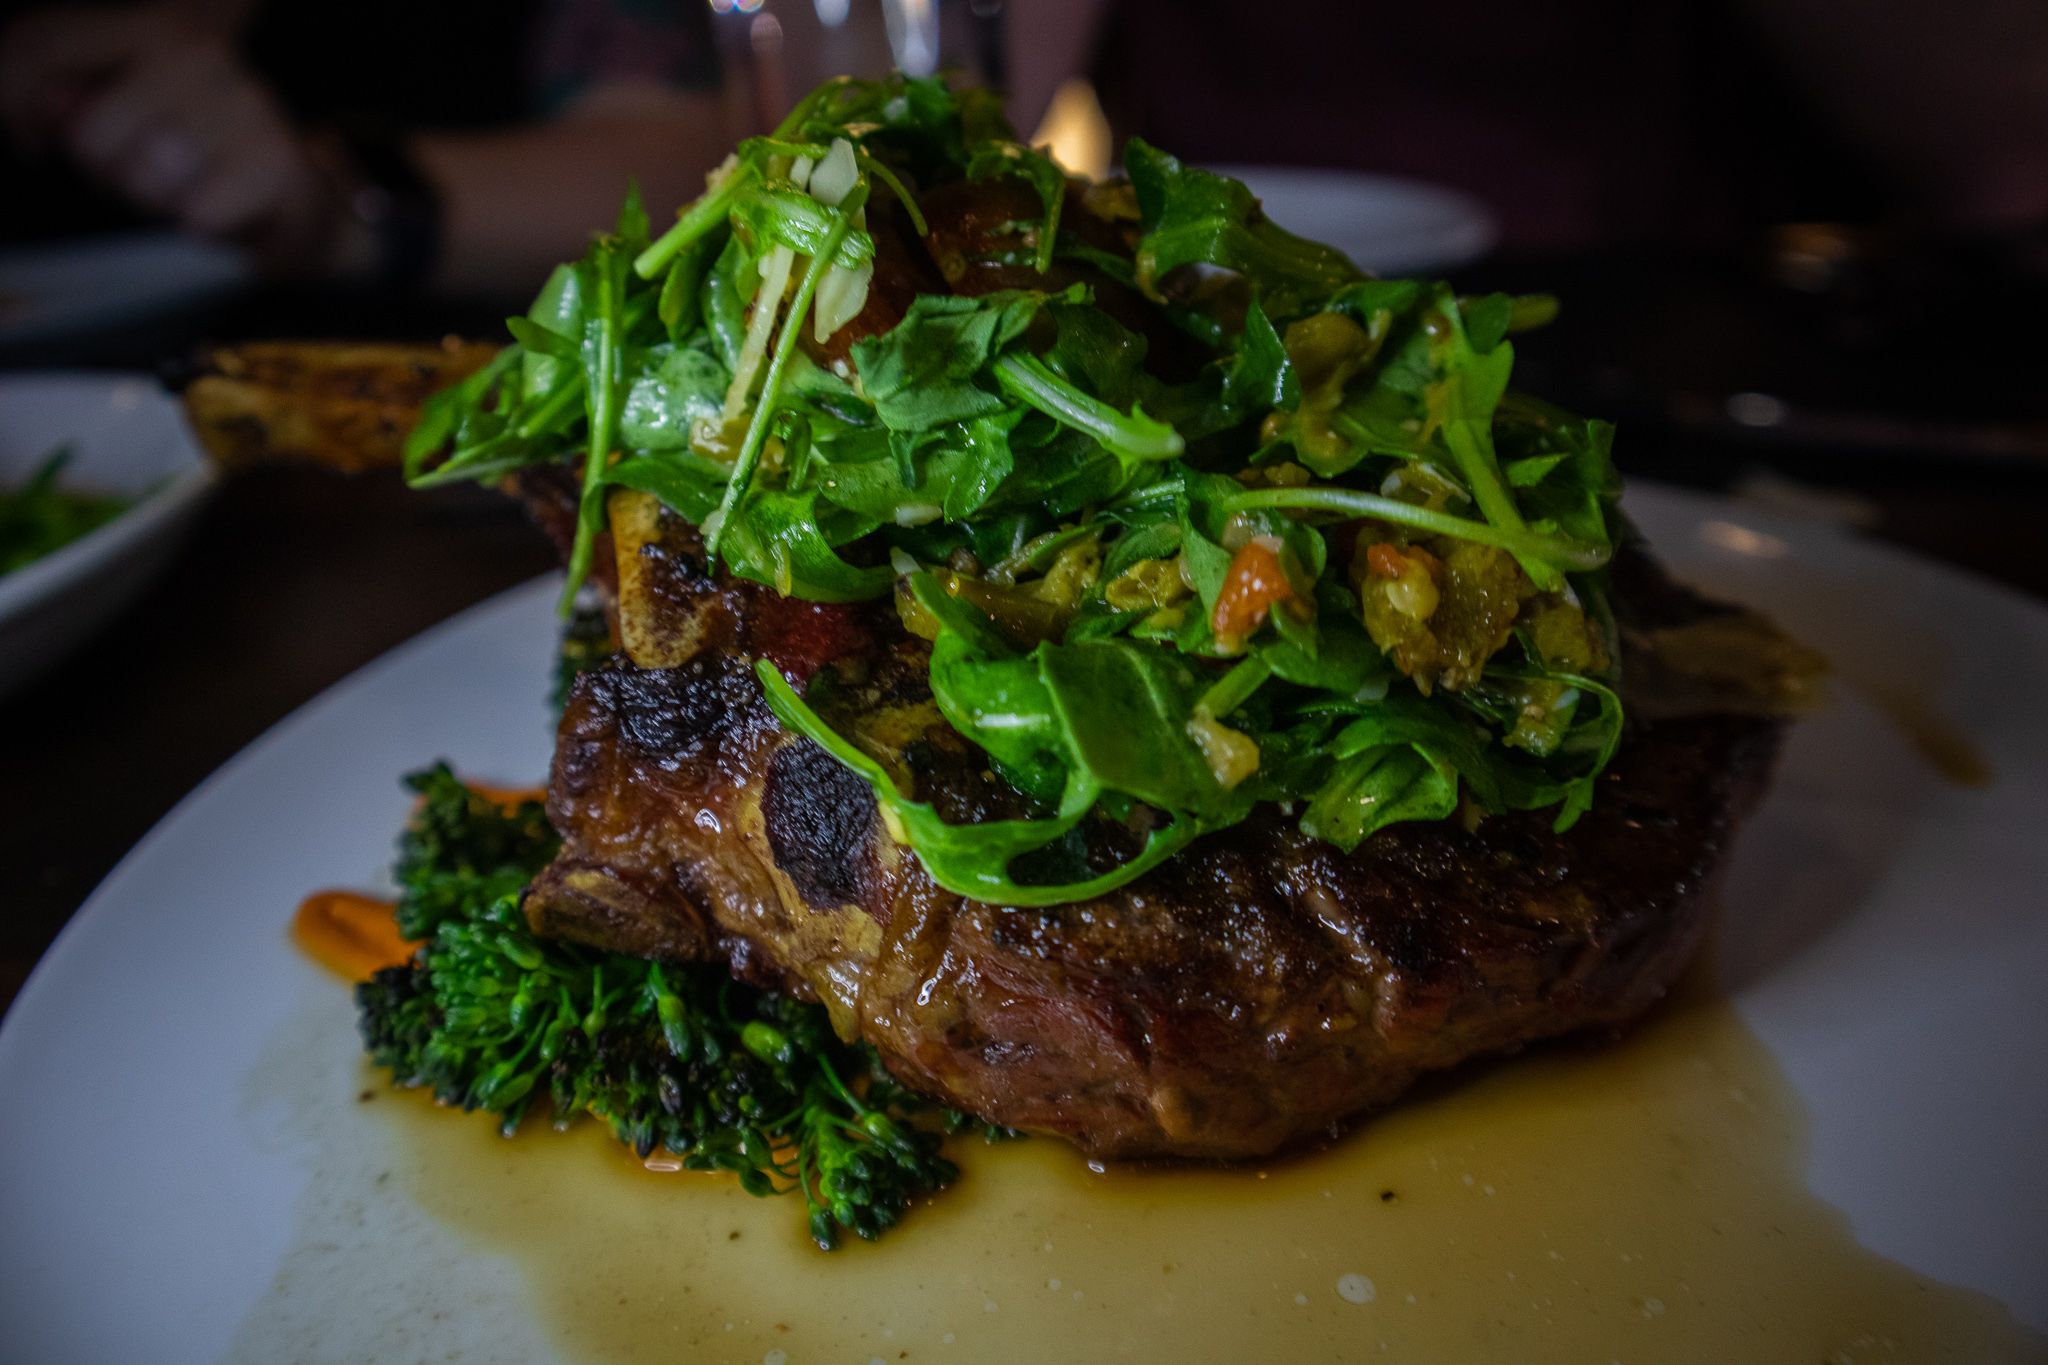 22 oz Bone-in Ribeye - Grilled Broccoli, Arugula, Shishito Pepper Salsa